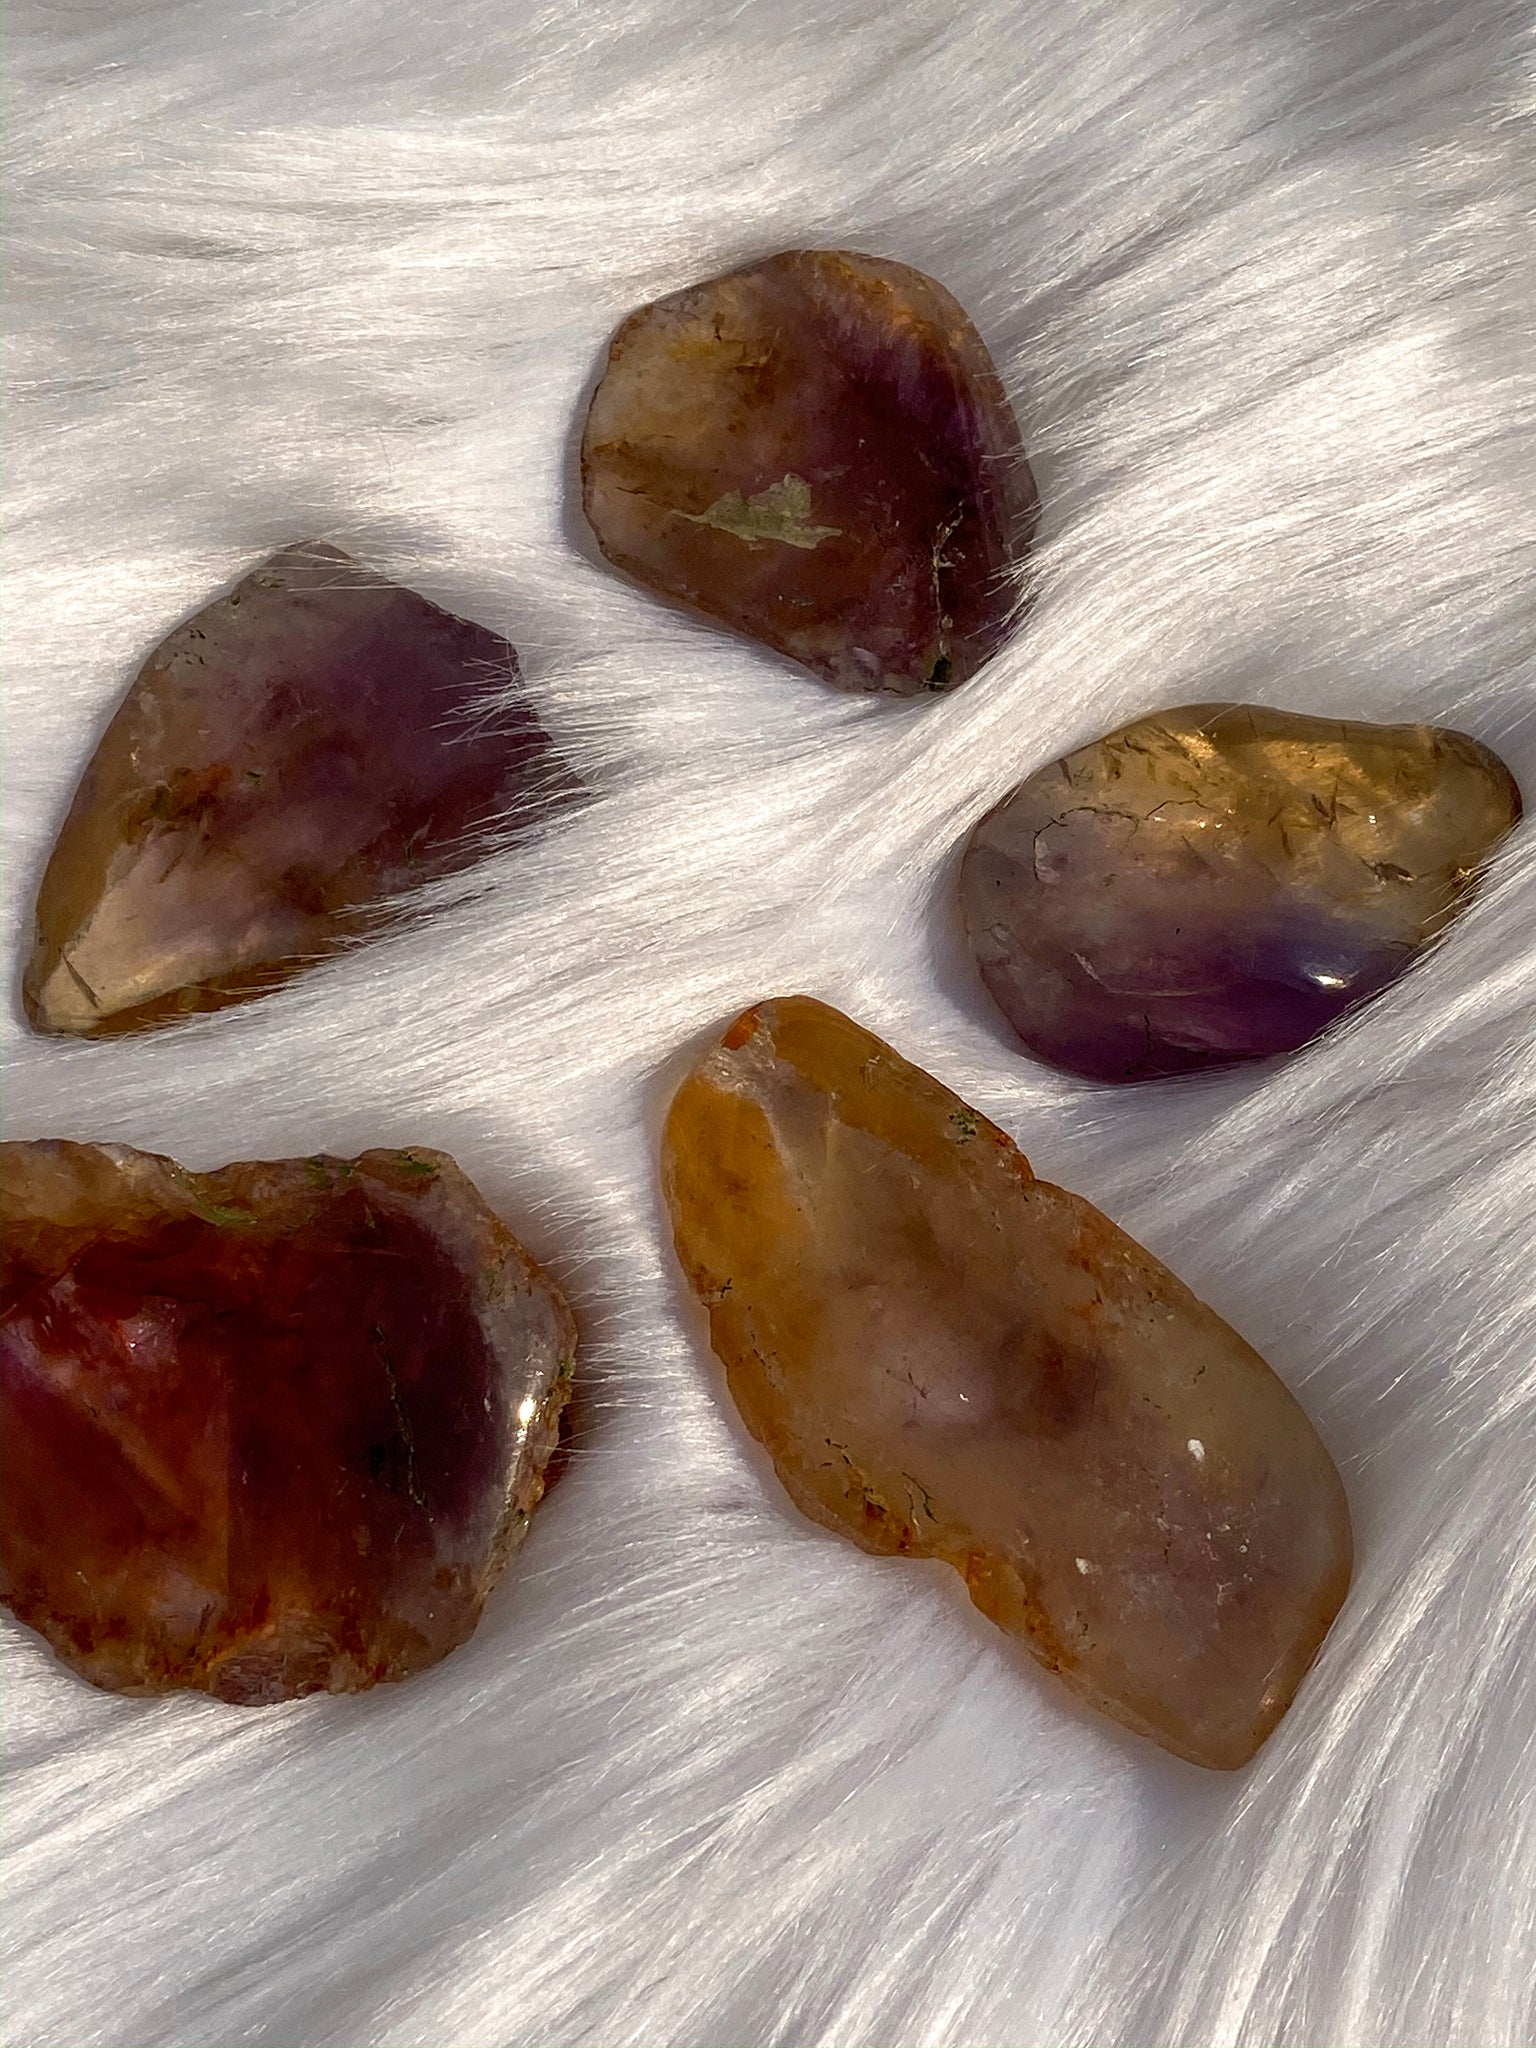 Ametrine One Face Polished (5 pieces pack) 103gm